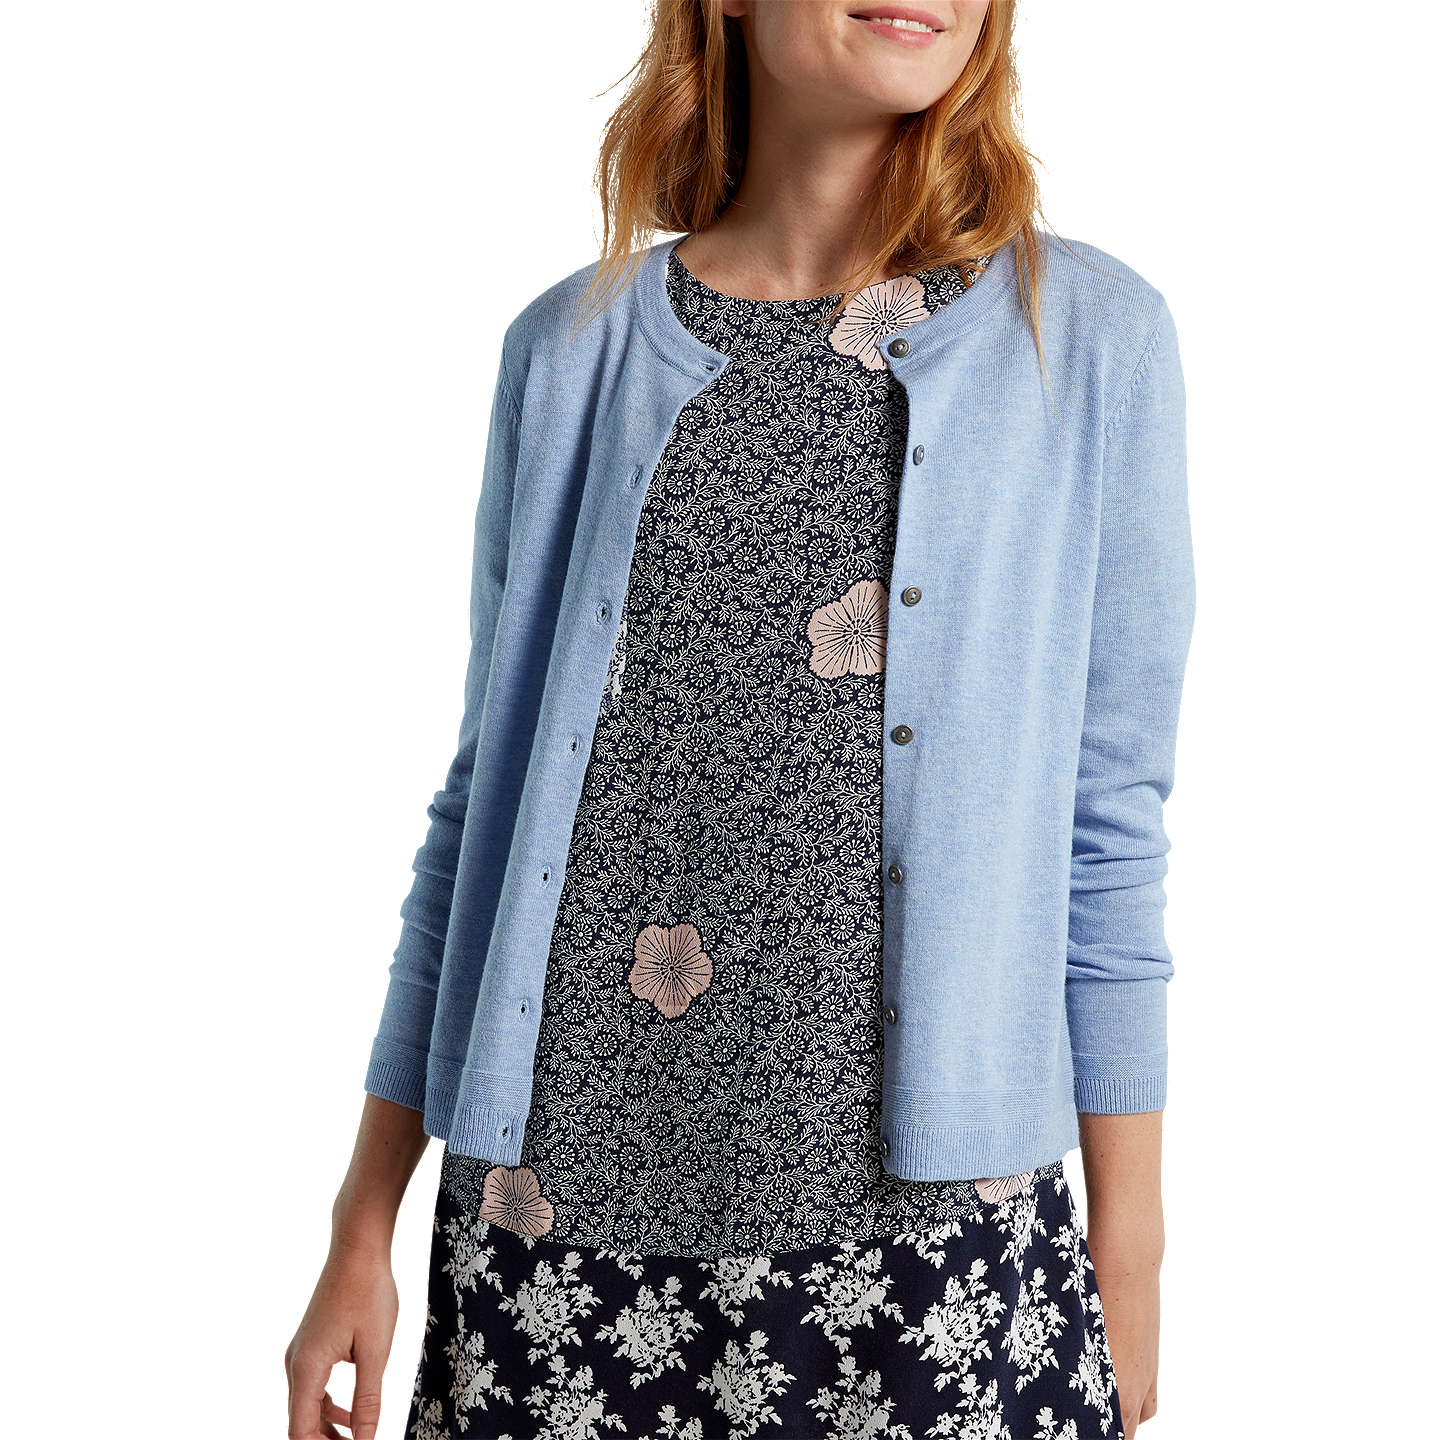 BuyWhite Stuff Forest Crew Cardigan, Capri Blue, 6 Online at johnlewis.com